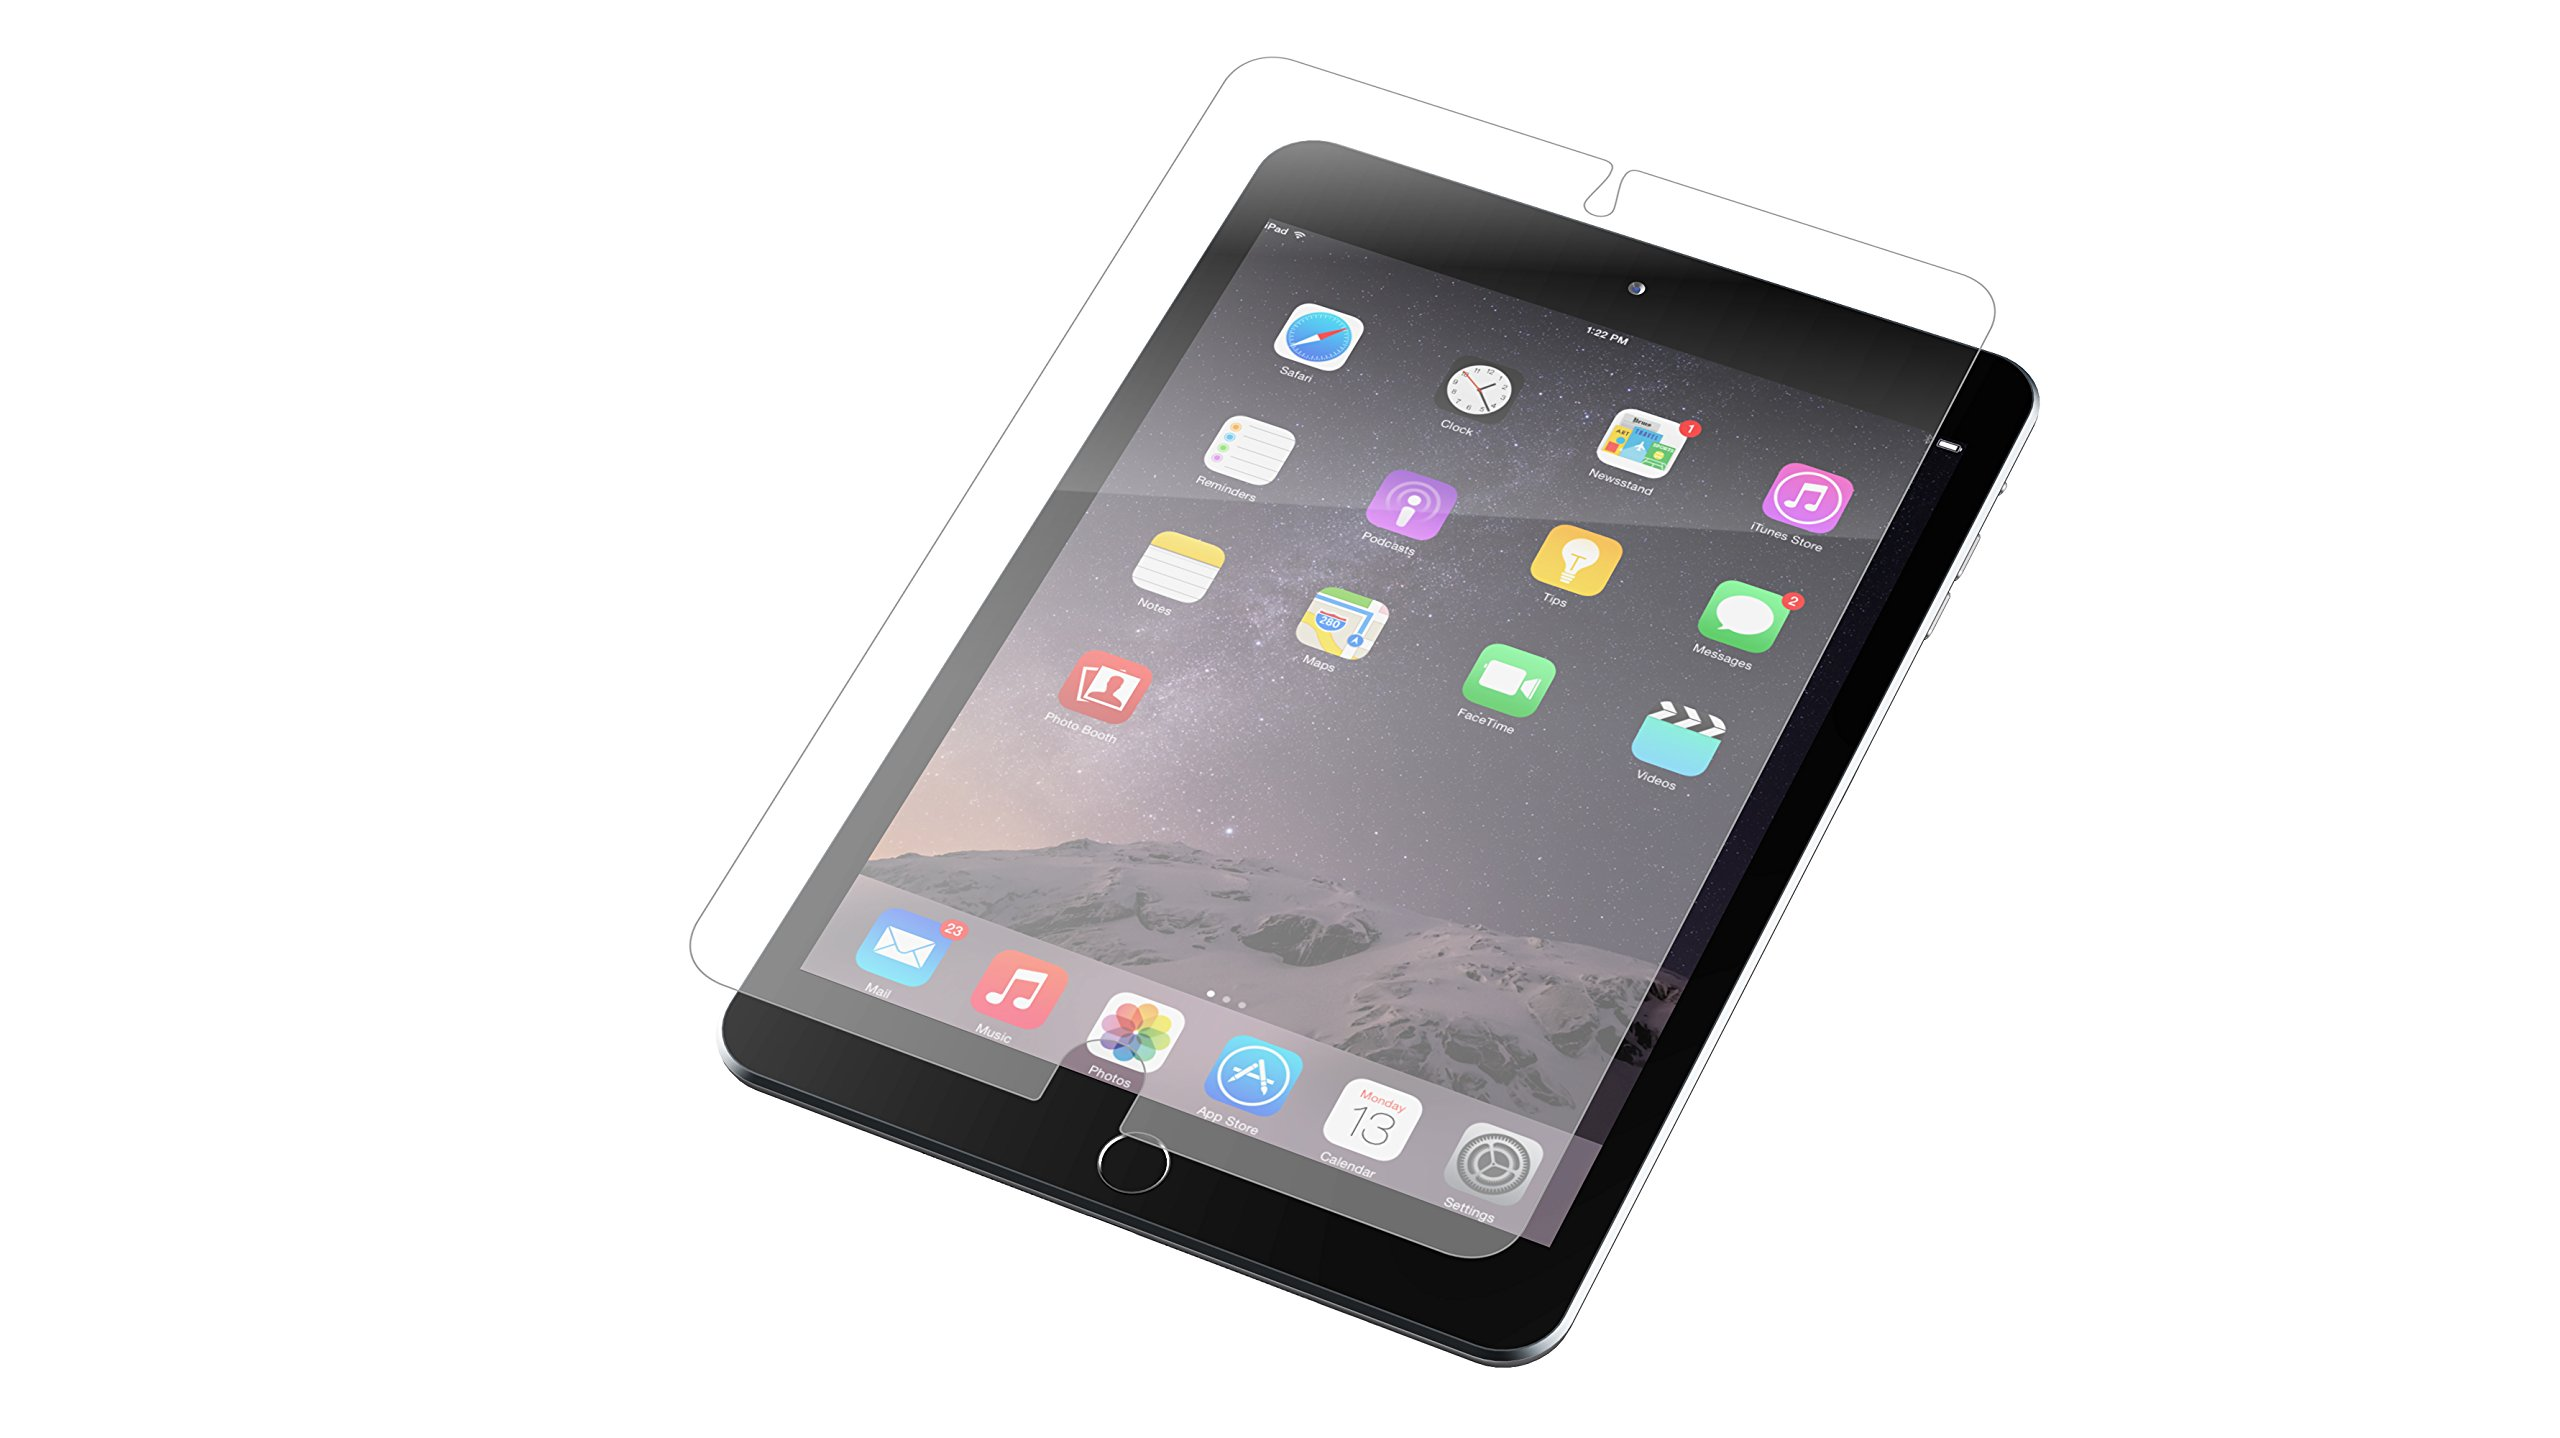 ZAGG InvisibleShield HDX Screen Protector - HD Clarity + Extreme Shatter Protection for Apple iPad mini 4 by ZAGG